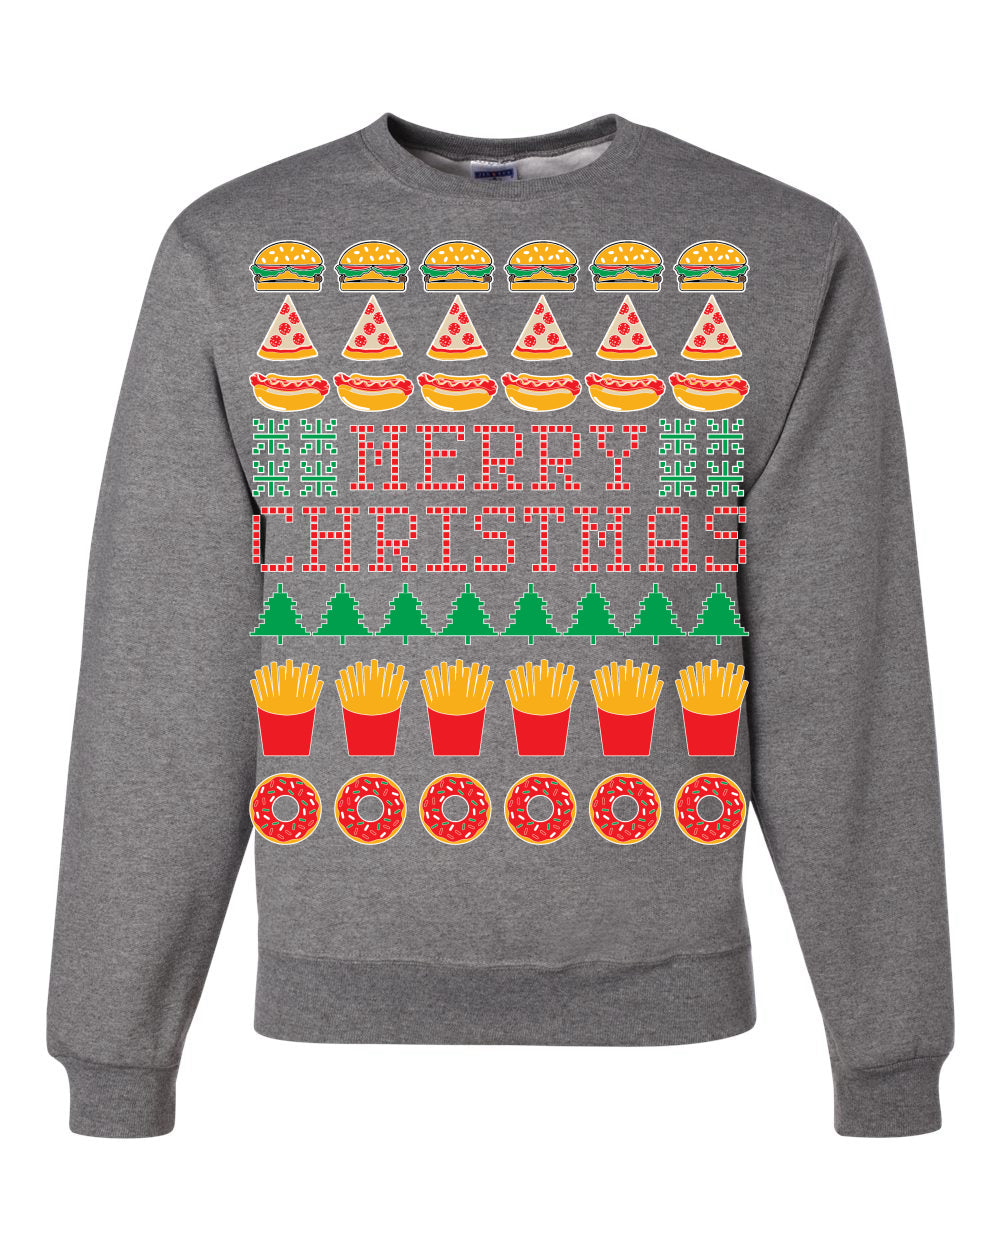 Merry Christmas Junk Food Unisex Crewneck Graphic Sweatshirt